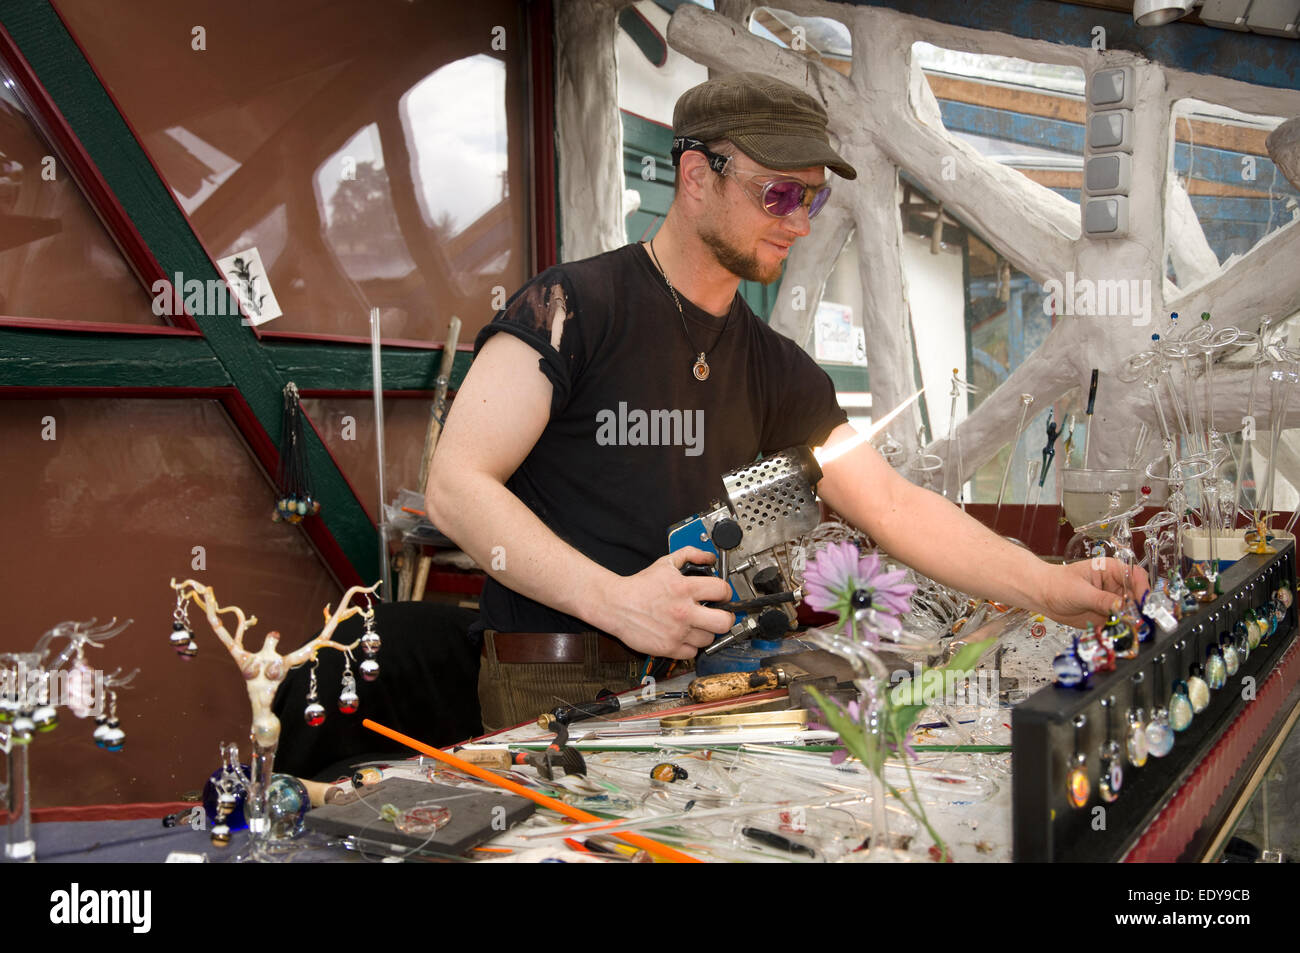 Glass blower working inside of the Isarhatsche - Estate - the 'heath castle' in Northern Germany - Stock Image